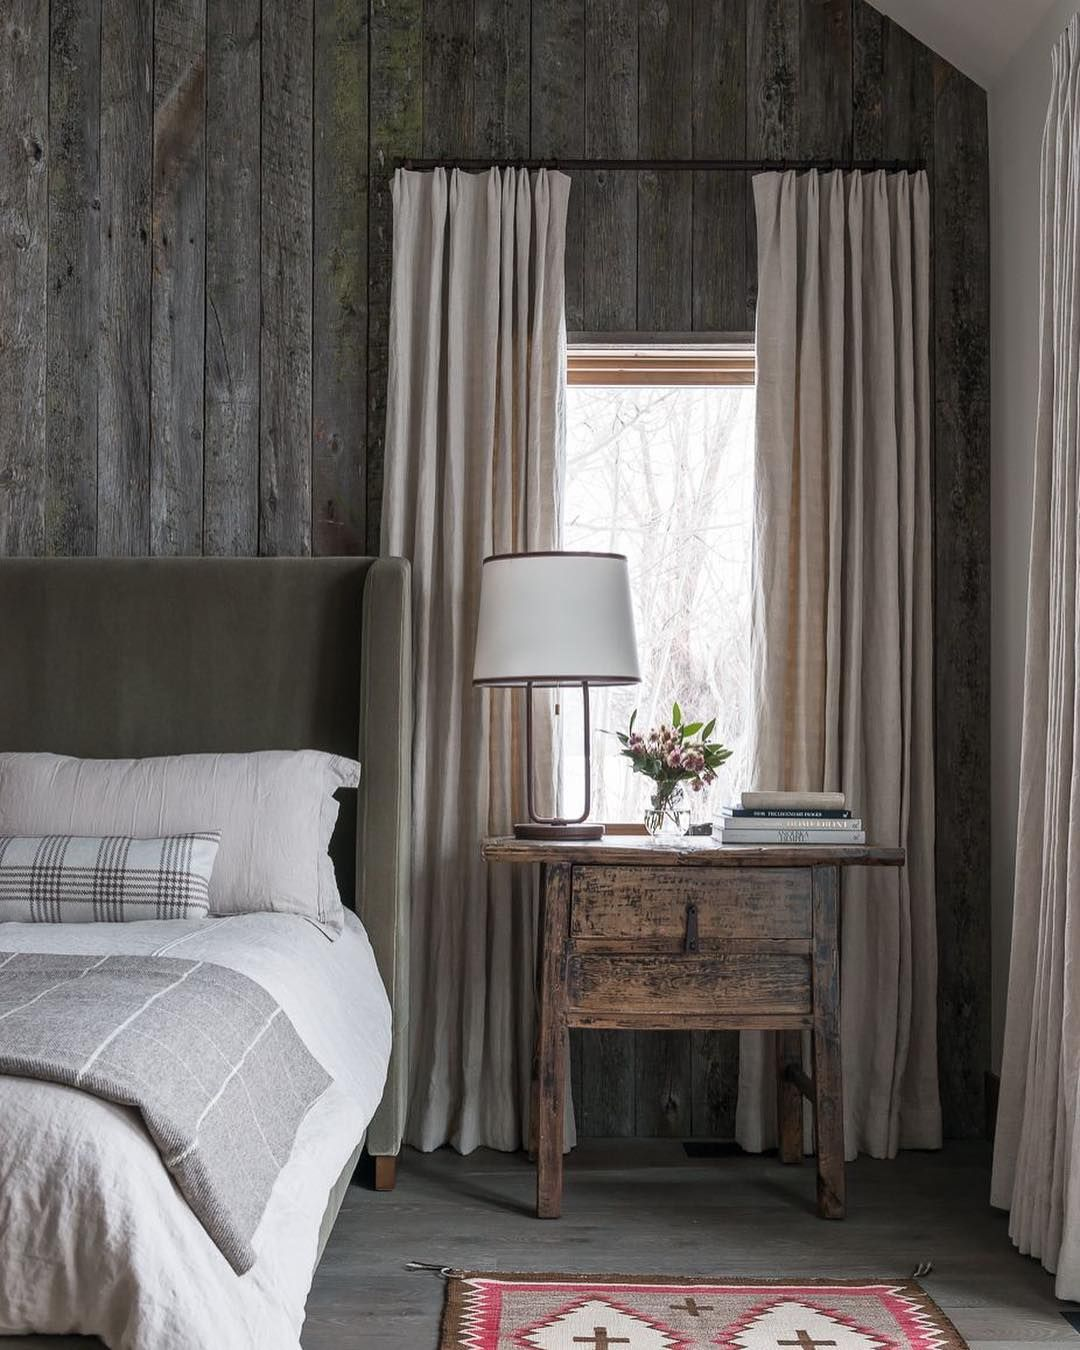 Cosy Bedroom Ideas For A Restful Retreat: This Cozy Bedroom Mixes A Modern, Luxuriously Upholstery